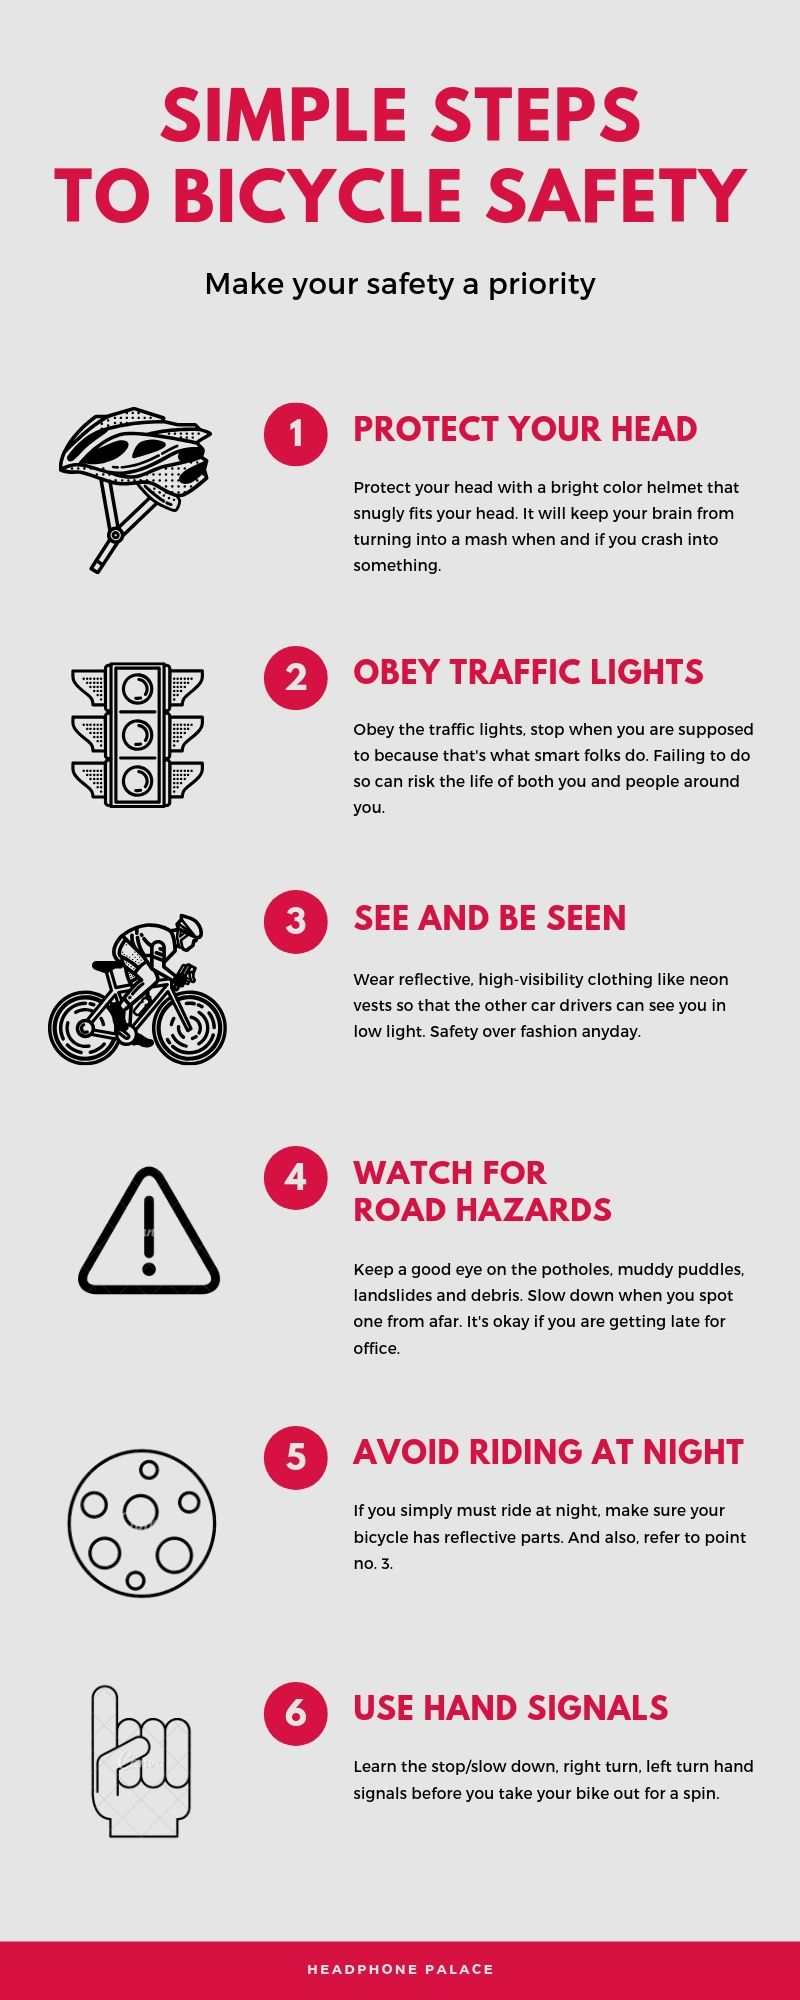 bicycle safety guide